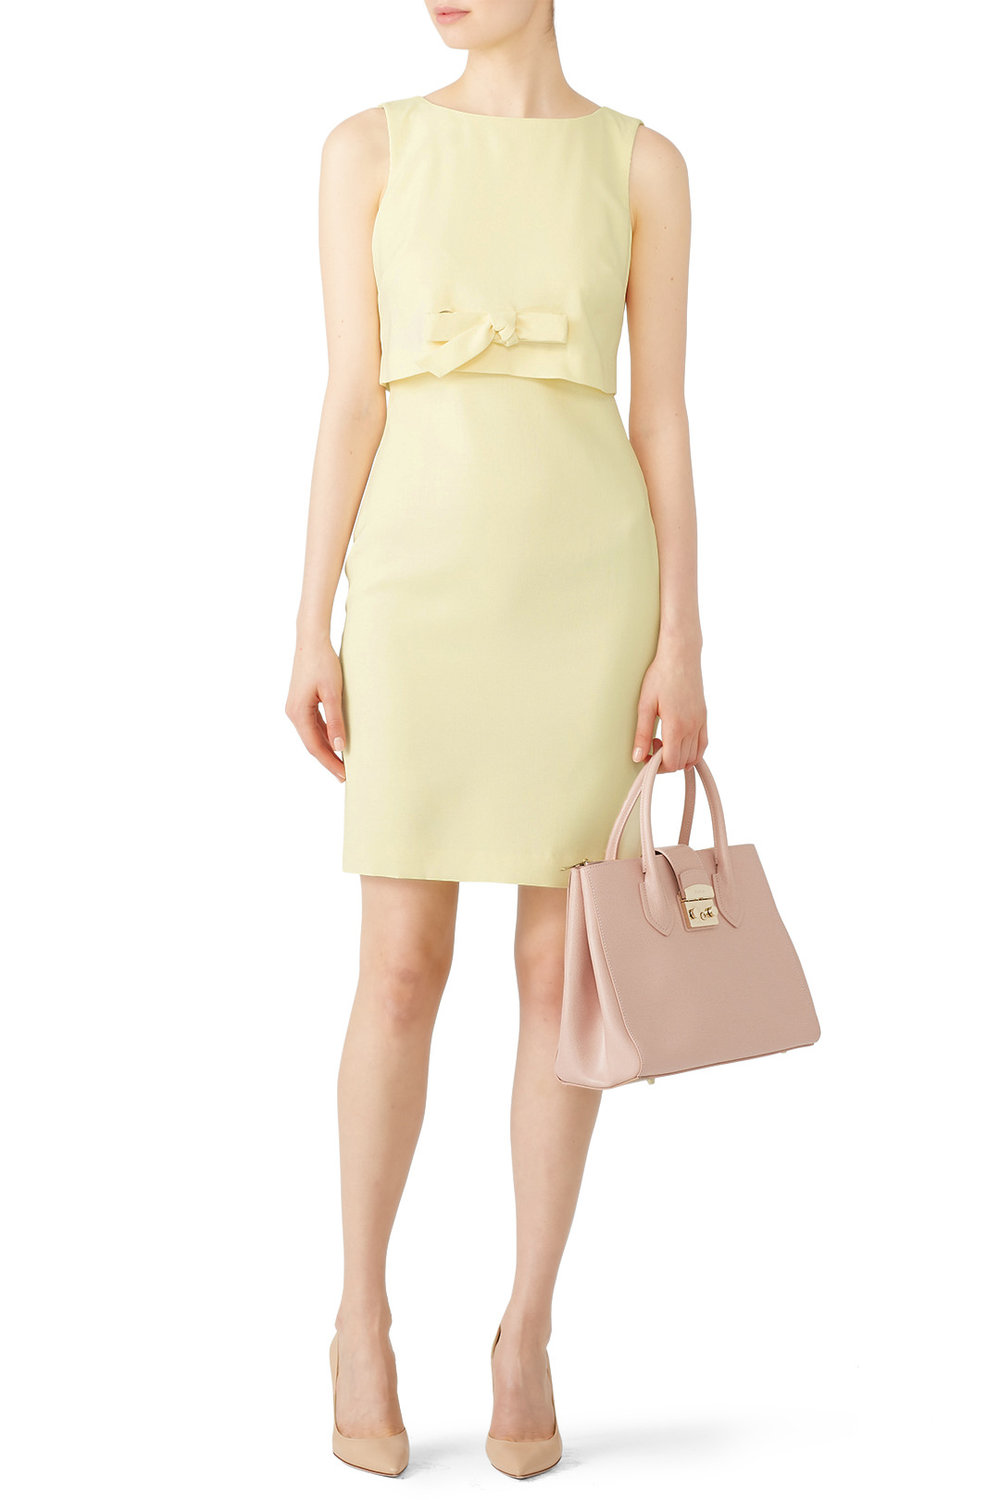 Badgley Mischka Yellow Grommet Sheath